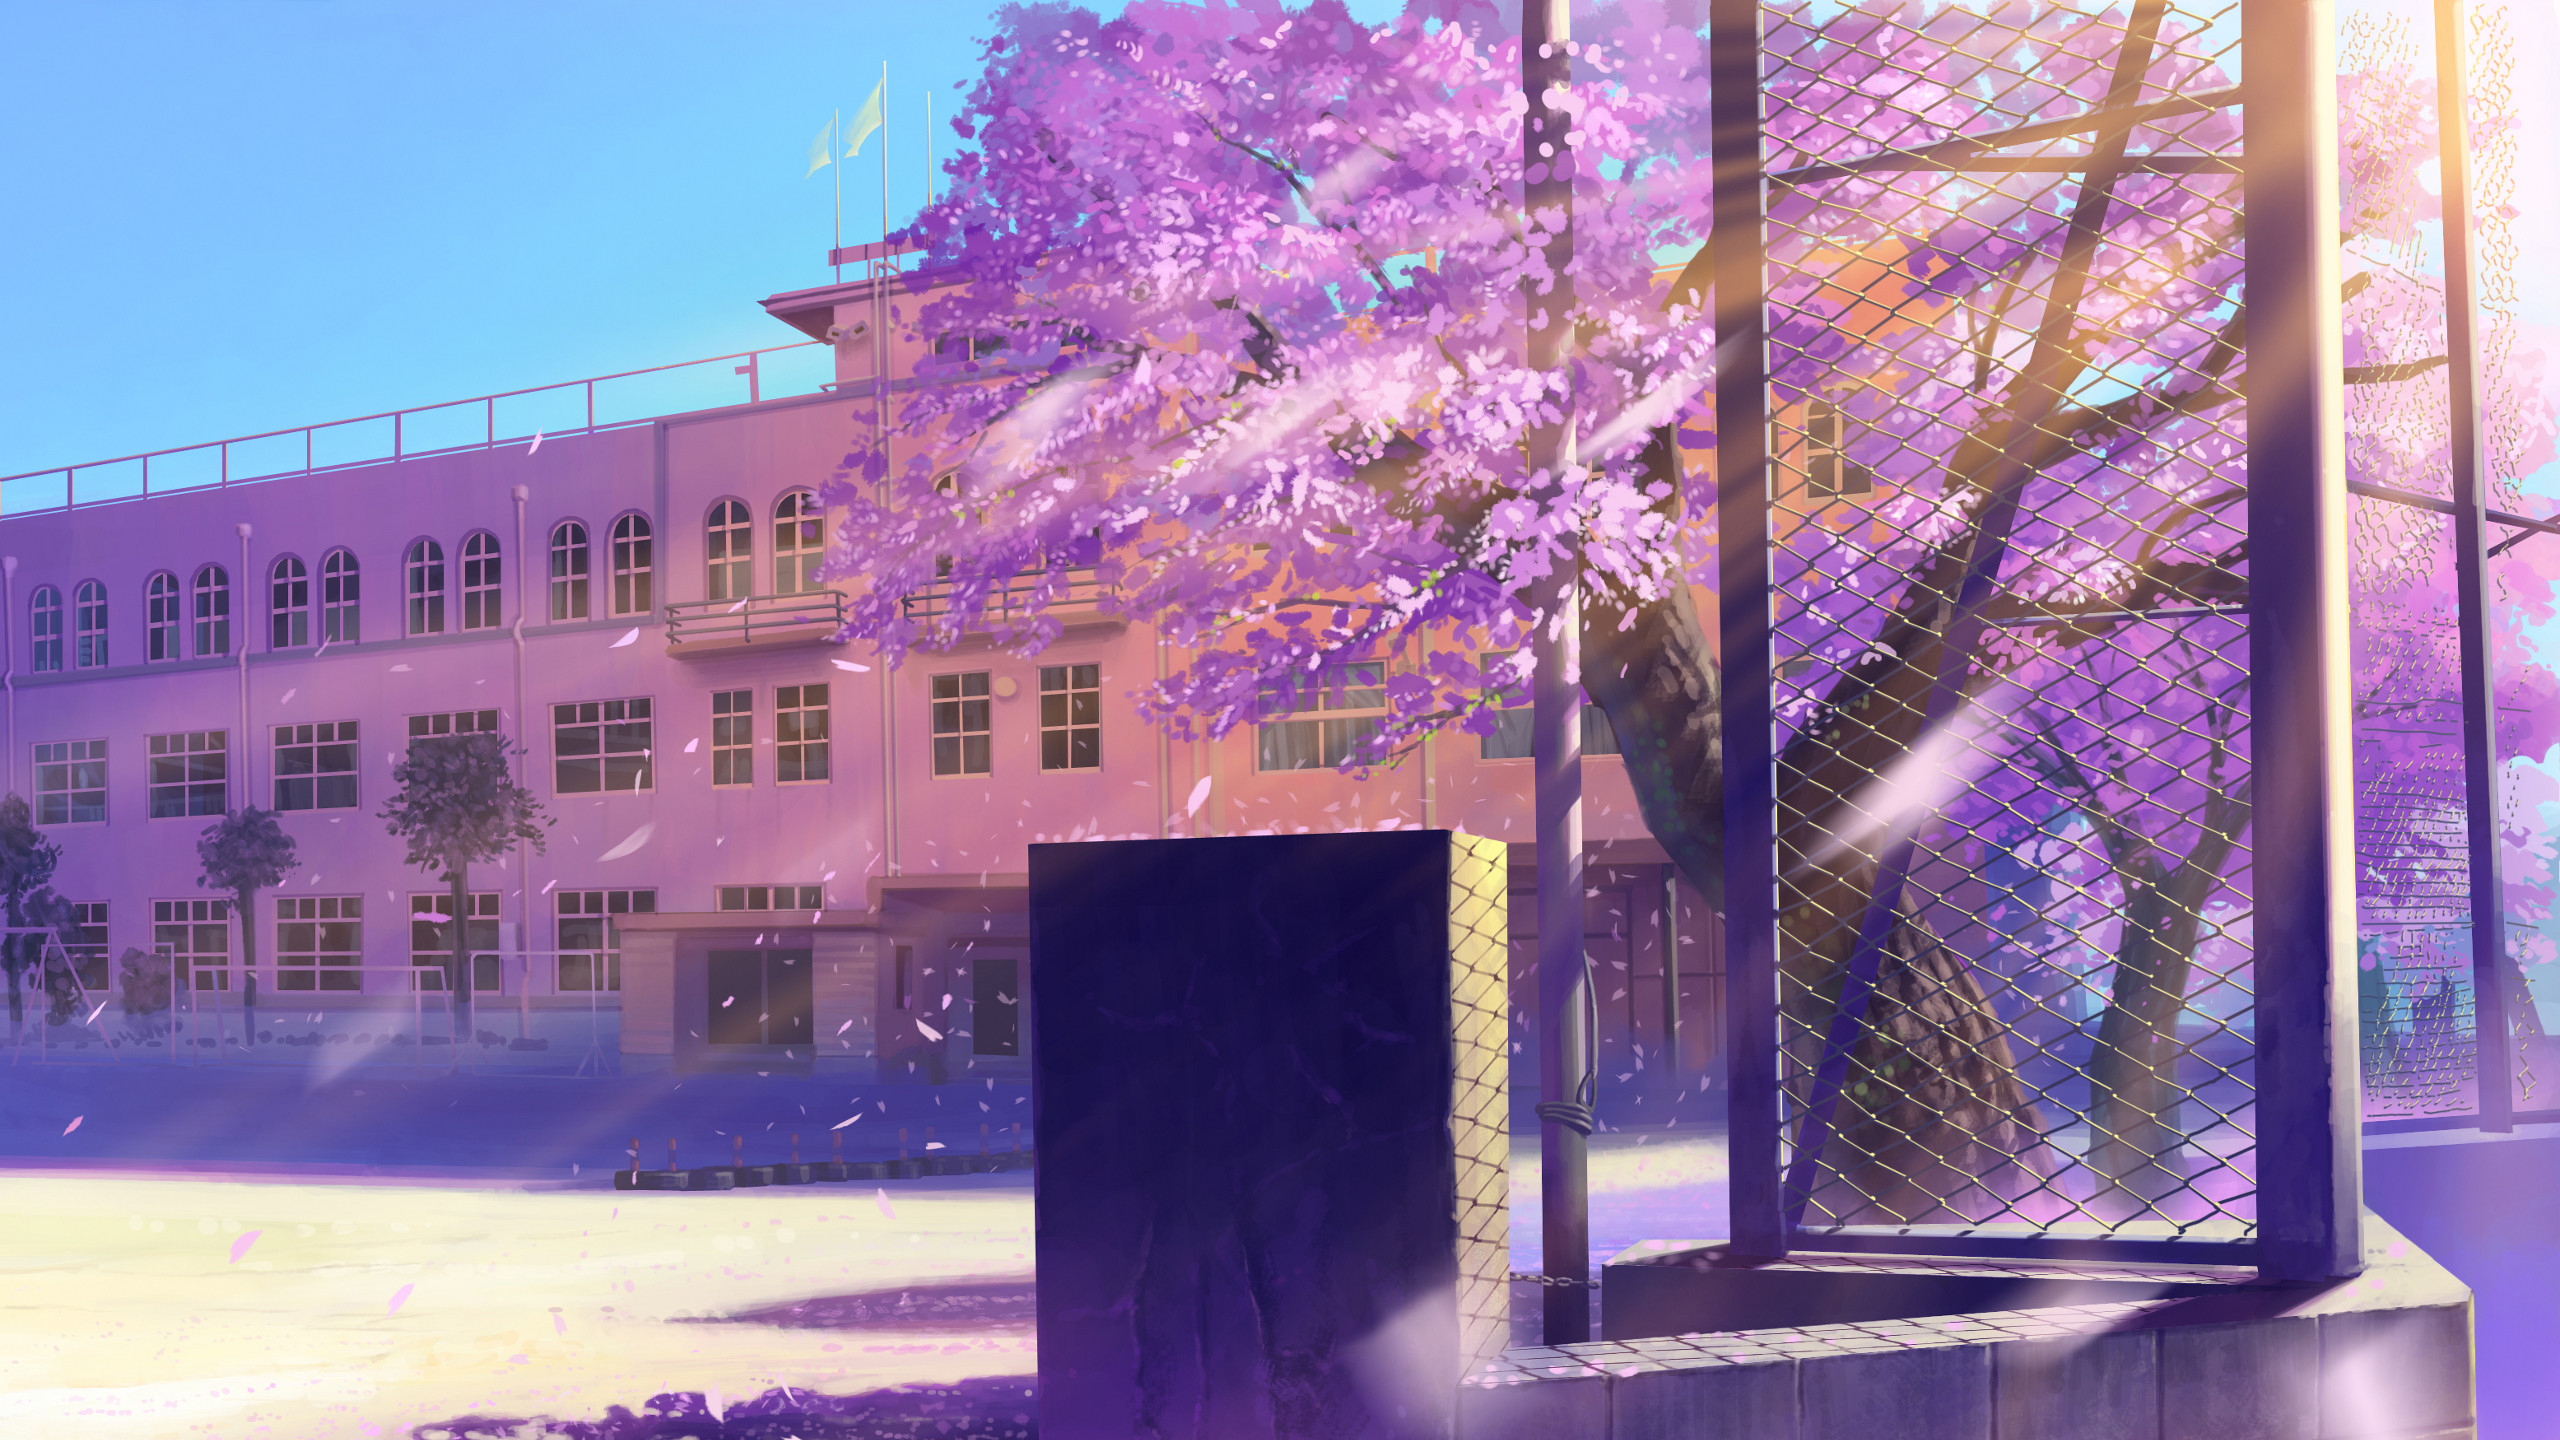 wallpaper.wiki-Anime-Cherry-Blossom-Background-for-PC-